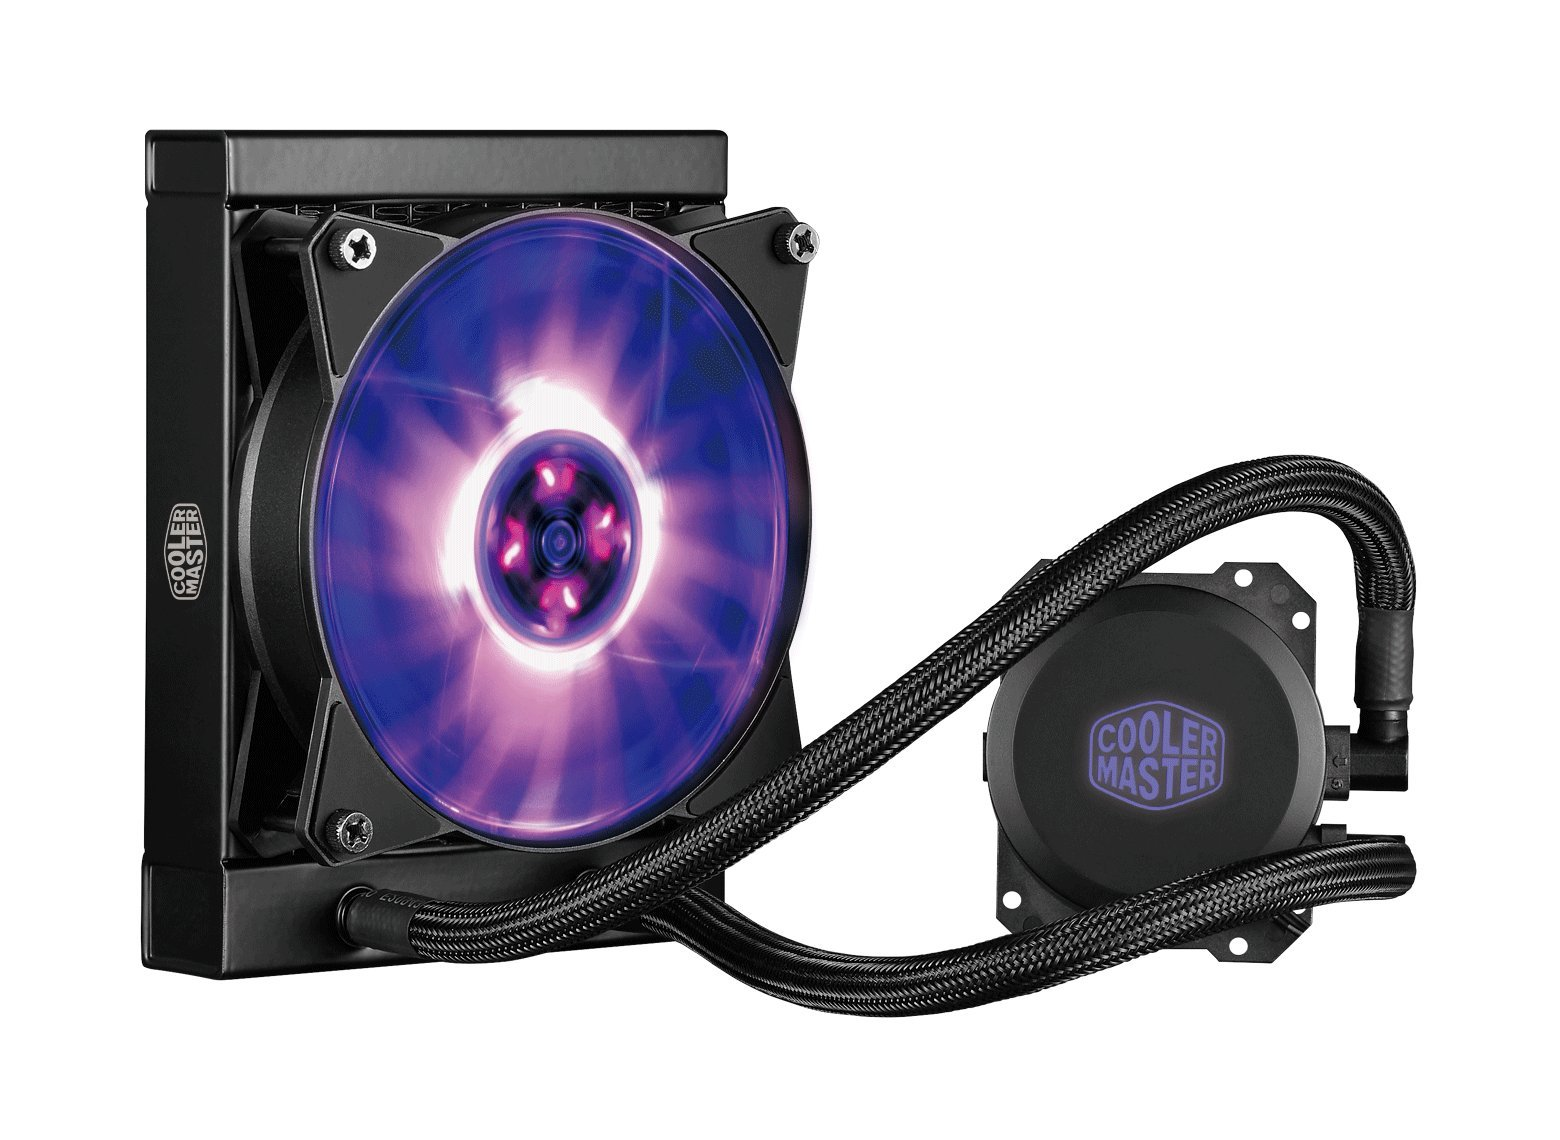 Cooler Master MasterLiquid ML120L RGB AIO CPU Liquid Cooler '120mm Radiator, All-in-One, Dual Dissipation Pump' MLW-D12M-A20PC-R1 by Cooler Master